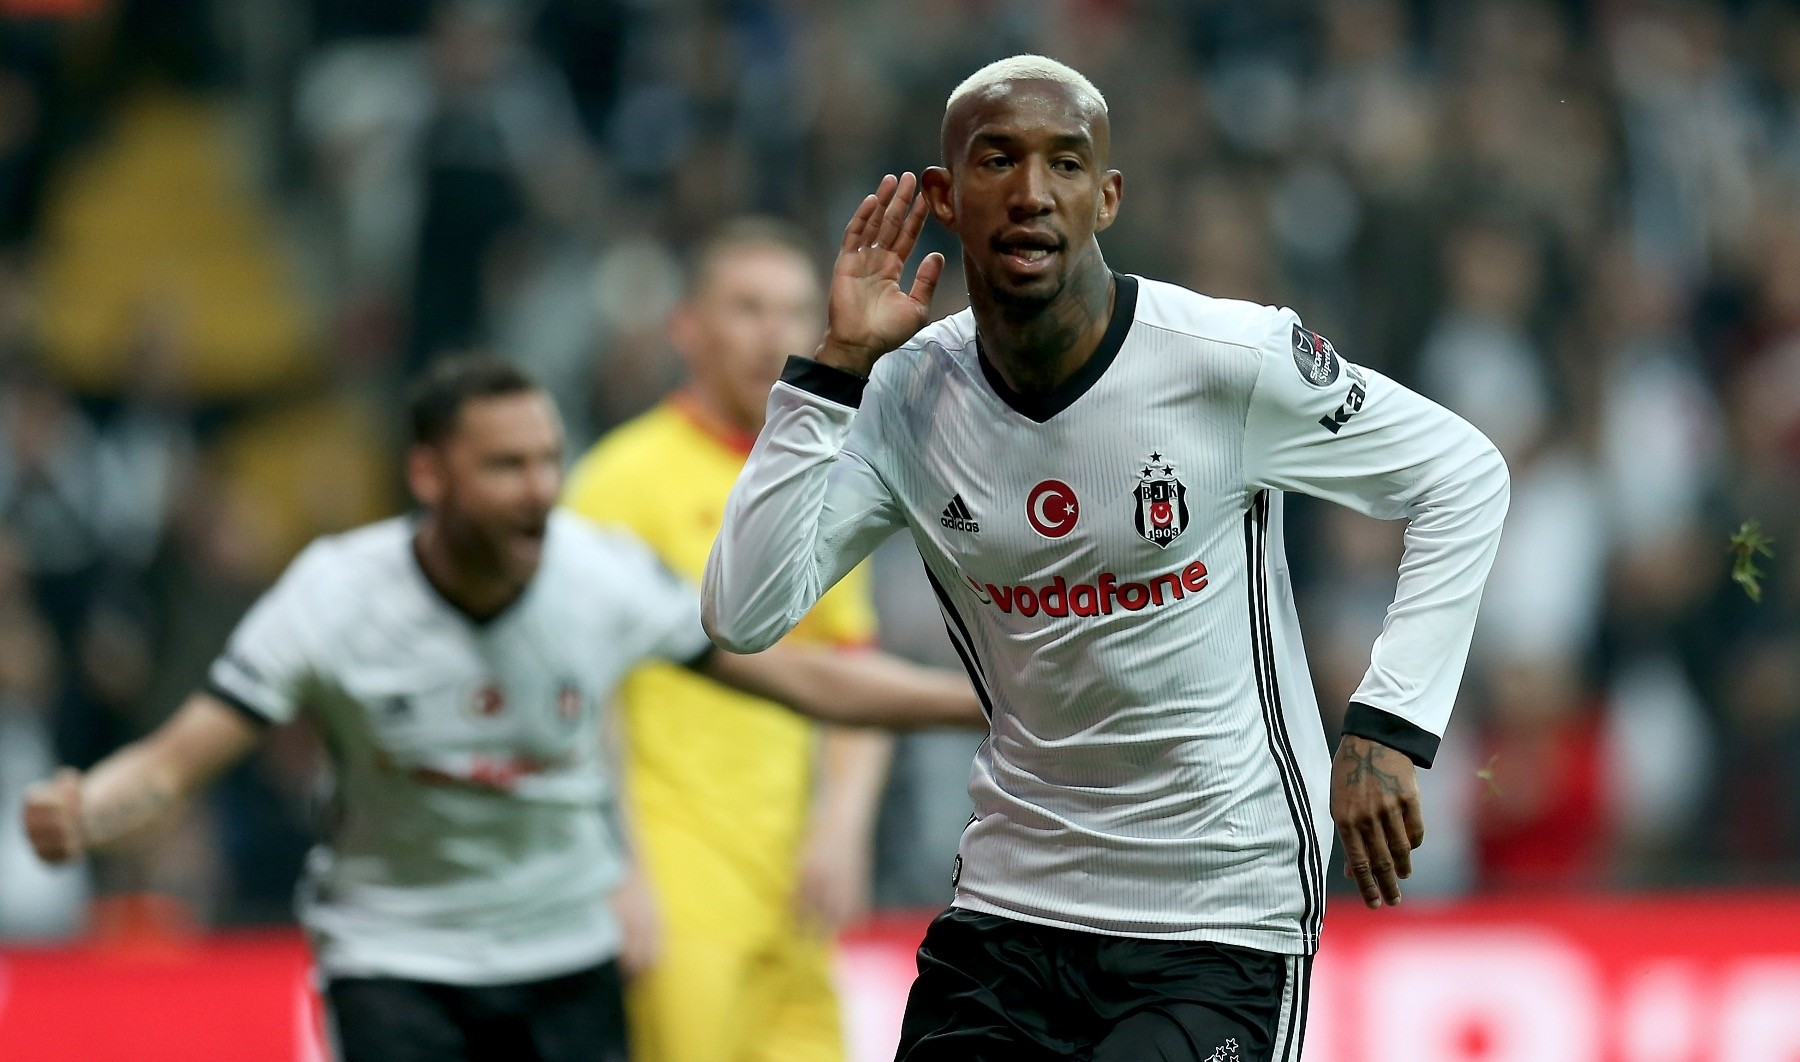 Talisca scored 12 goals as of 28th week of the Spor Toto Super League.